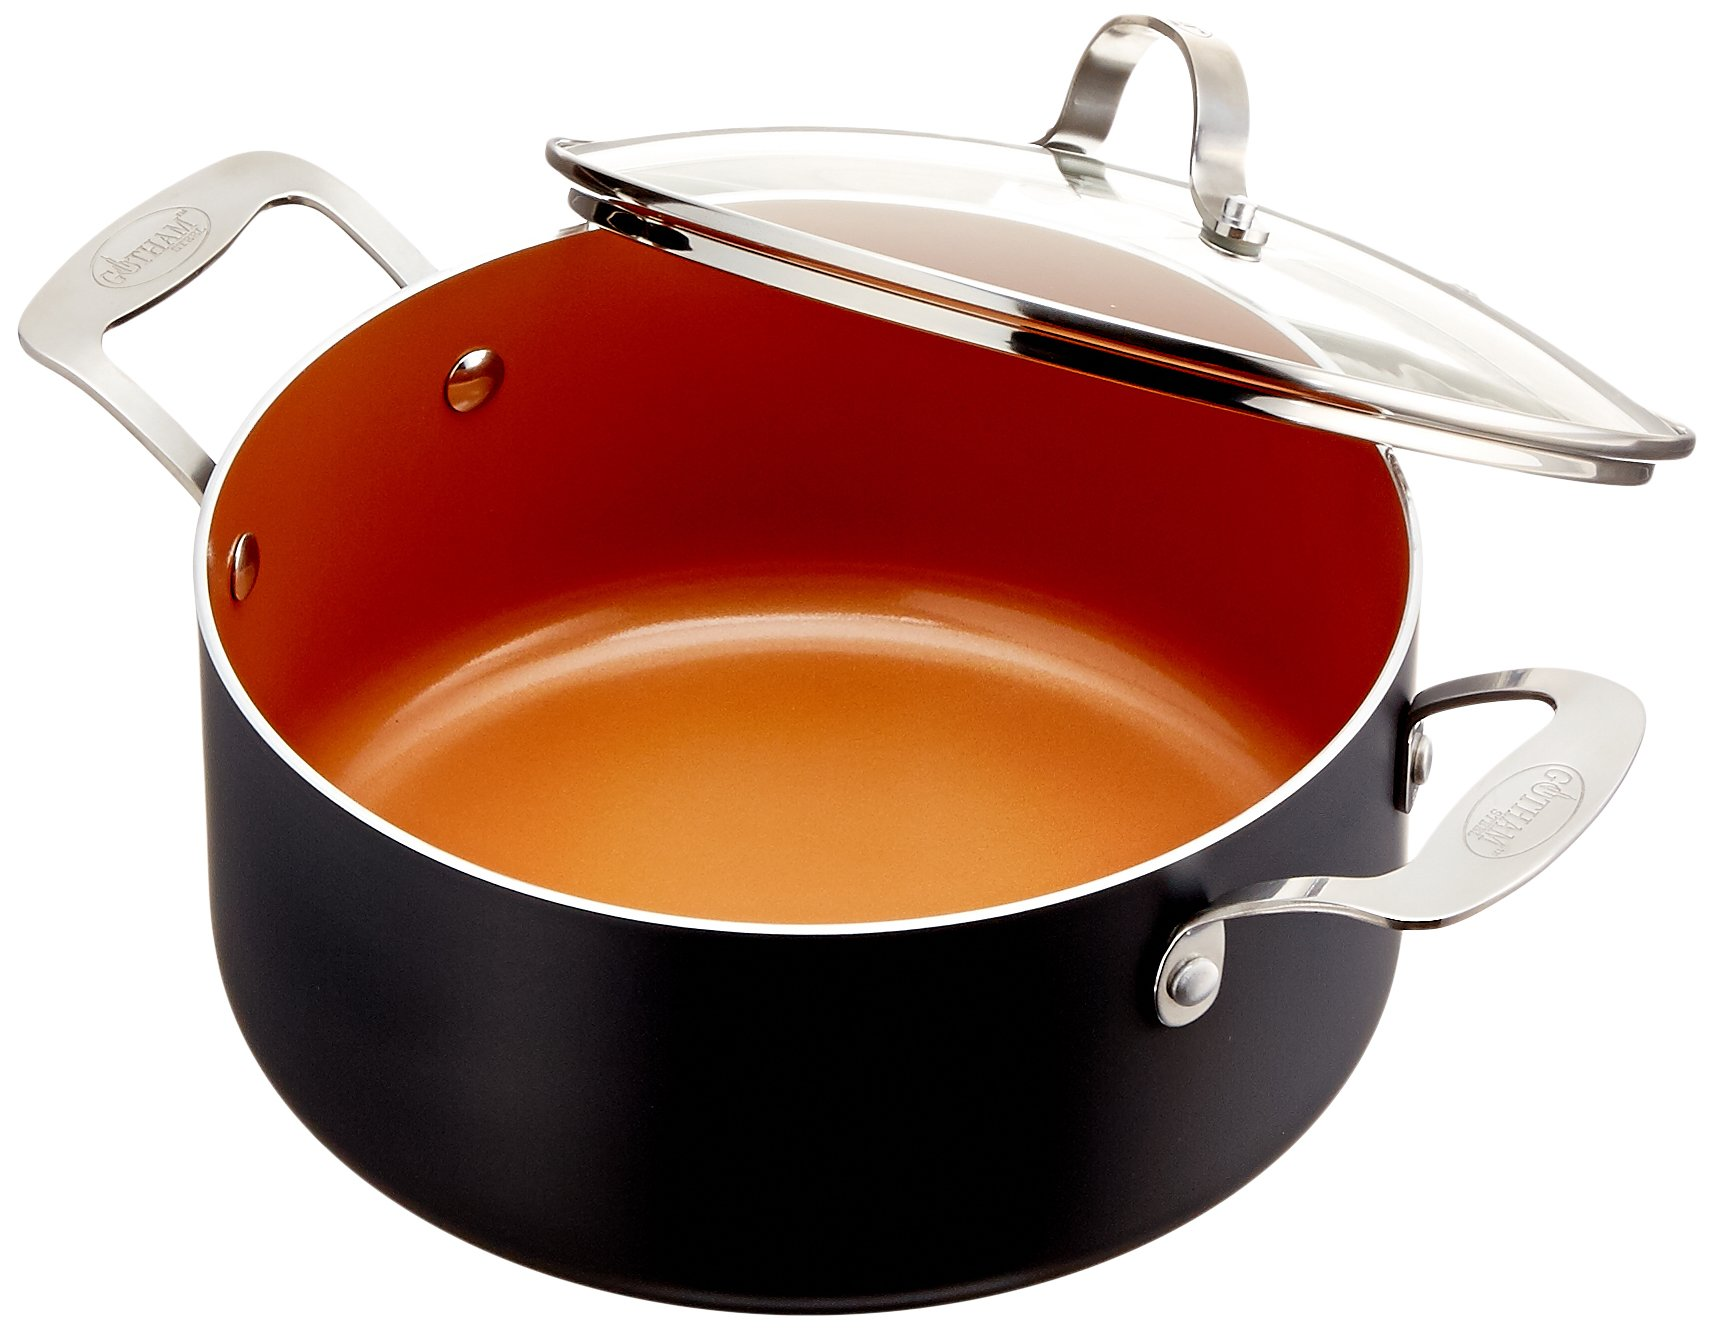 Gotham Steel 5-Quart Stock Pot with Ultra Nonstick Ceramic and Titanium Coating, Includes Tempered Glass Lid - Dishwasher Safe